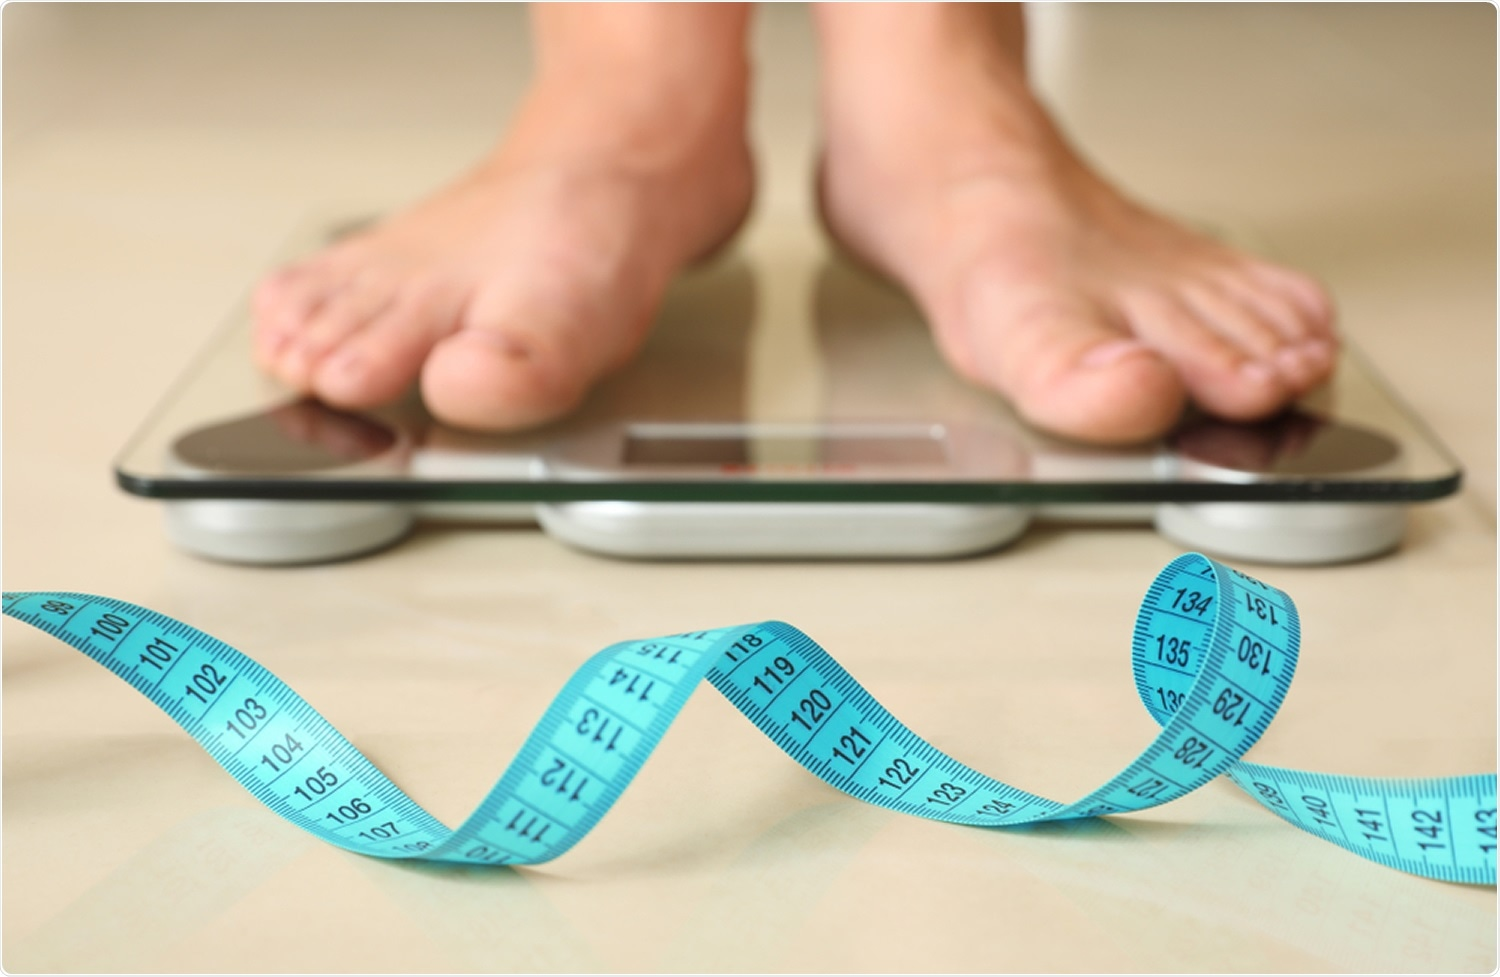 Study: Impact of COVID-19 pandemic on weight and BMI among UK adults: a longitudinal analysis of data from the HEBECO study. Image Credit: New Africa / Shutterstock